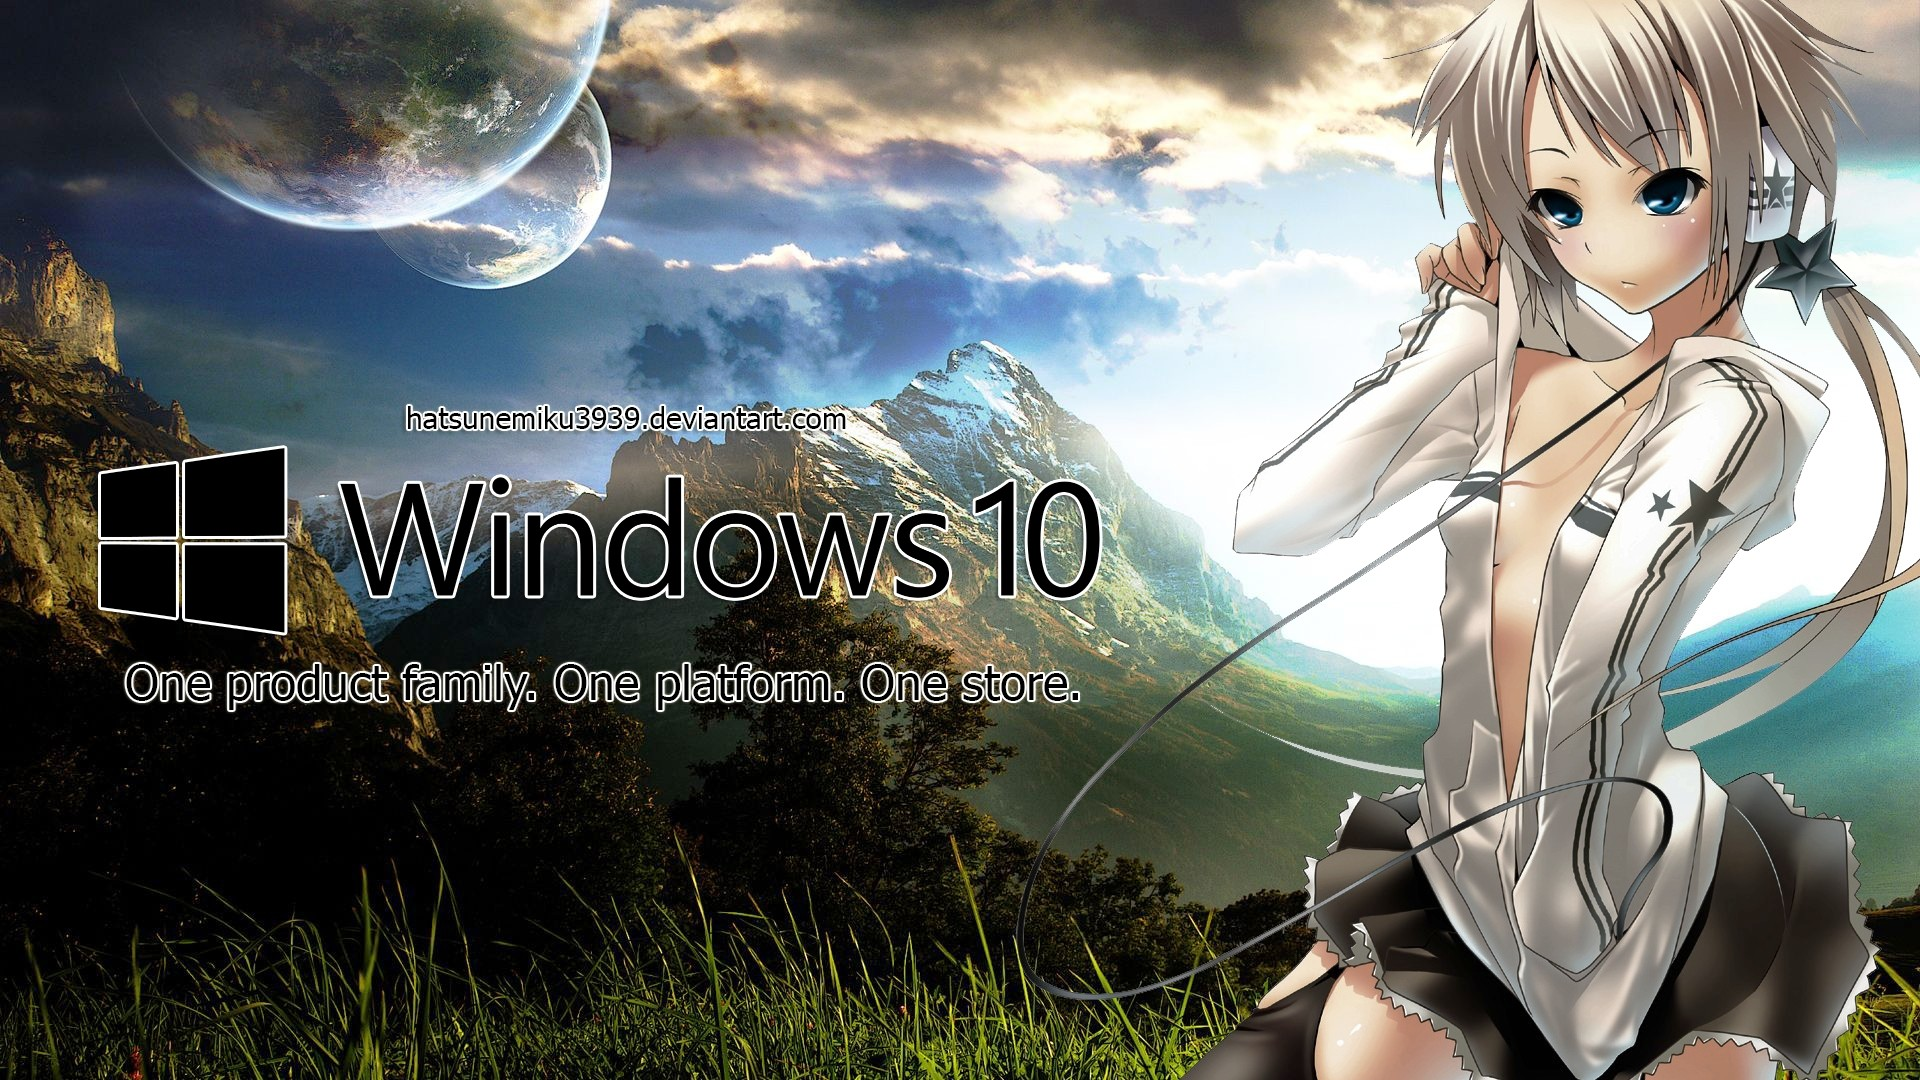 Res: 1920x1080, Best of Windows 10 Anime theme Wallpaper Hd Collection - Windows 10 Anime  Wallpaper by HatsuneMiku3939